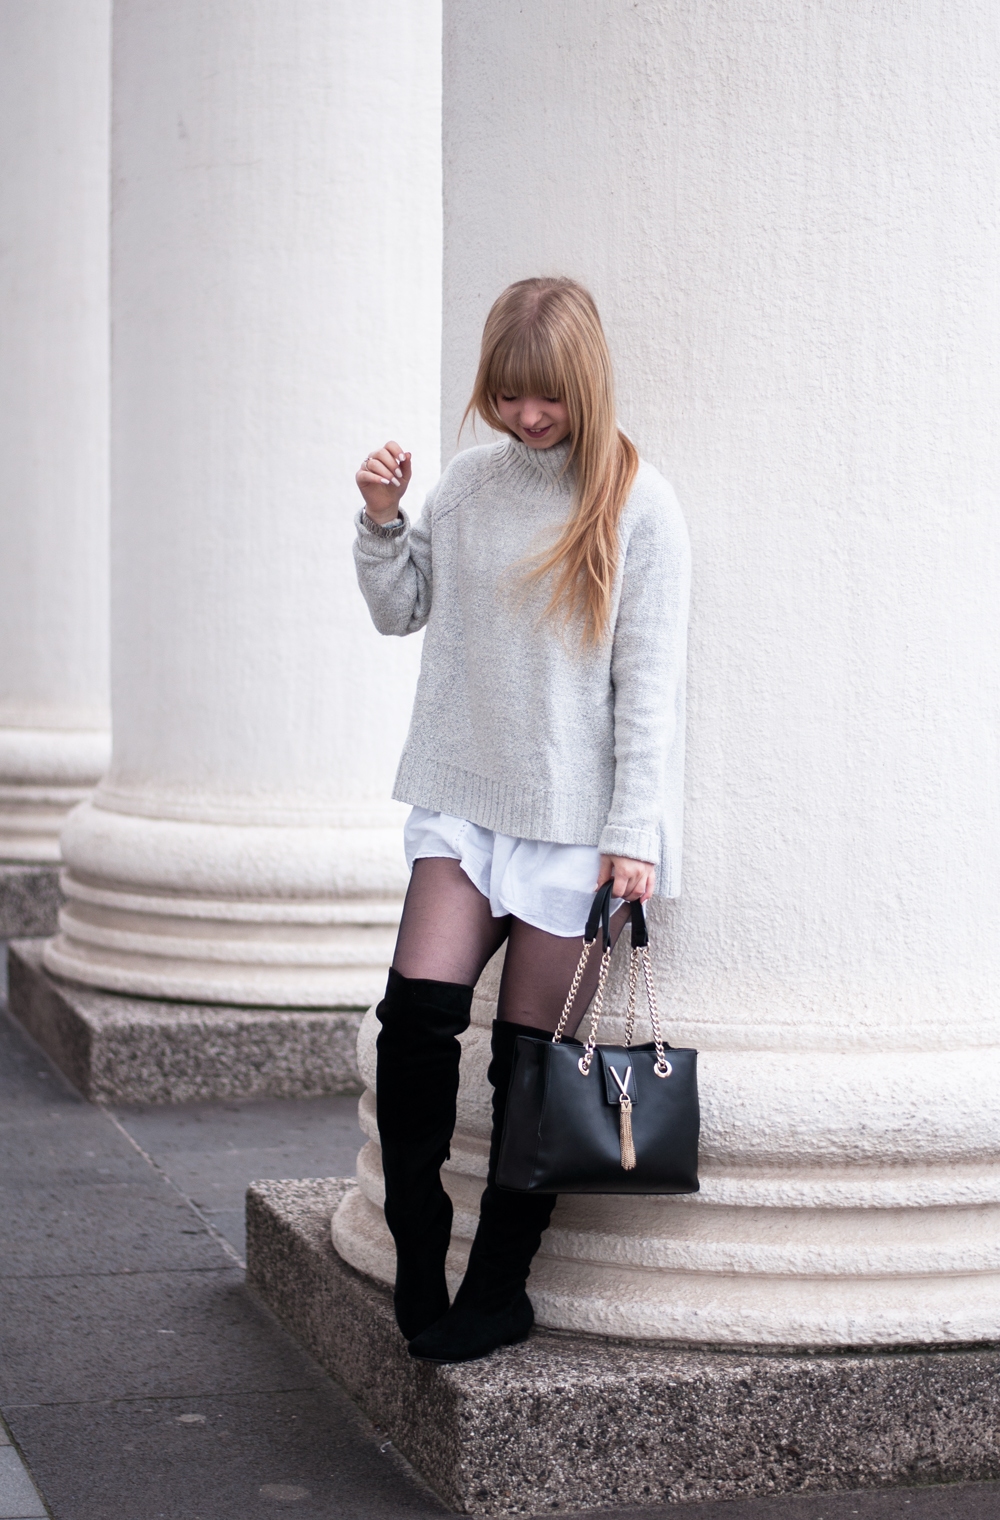 fashion-blogger-modeblogger-duisburg-layering-winter-outfit-look-cozy-turtleneck-sweater-overknee-boots-valentino-bag-3